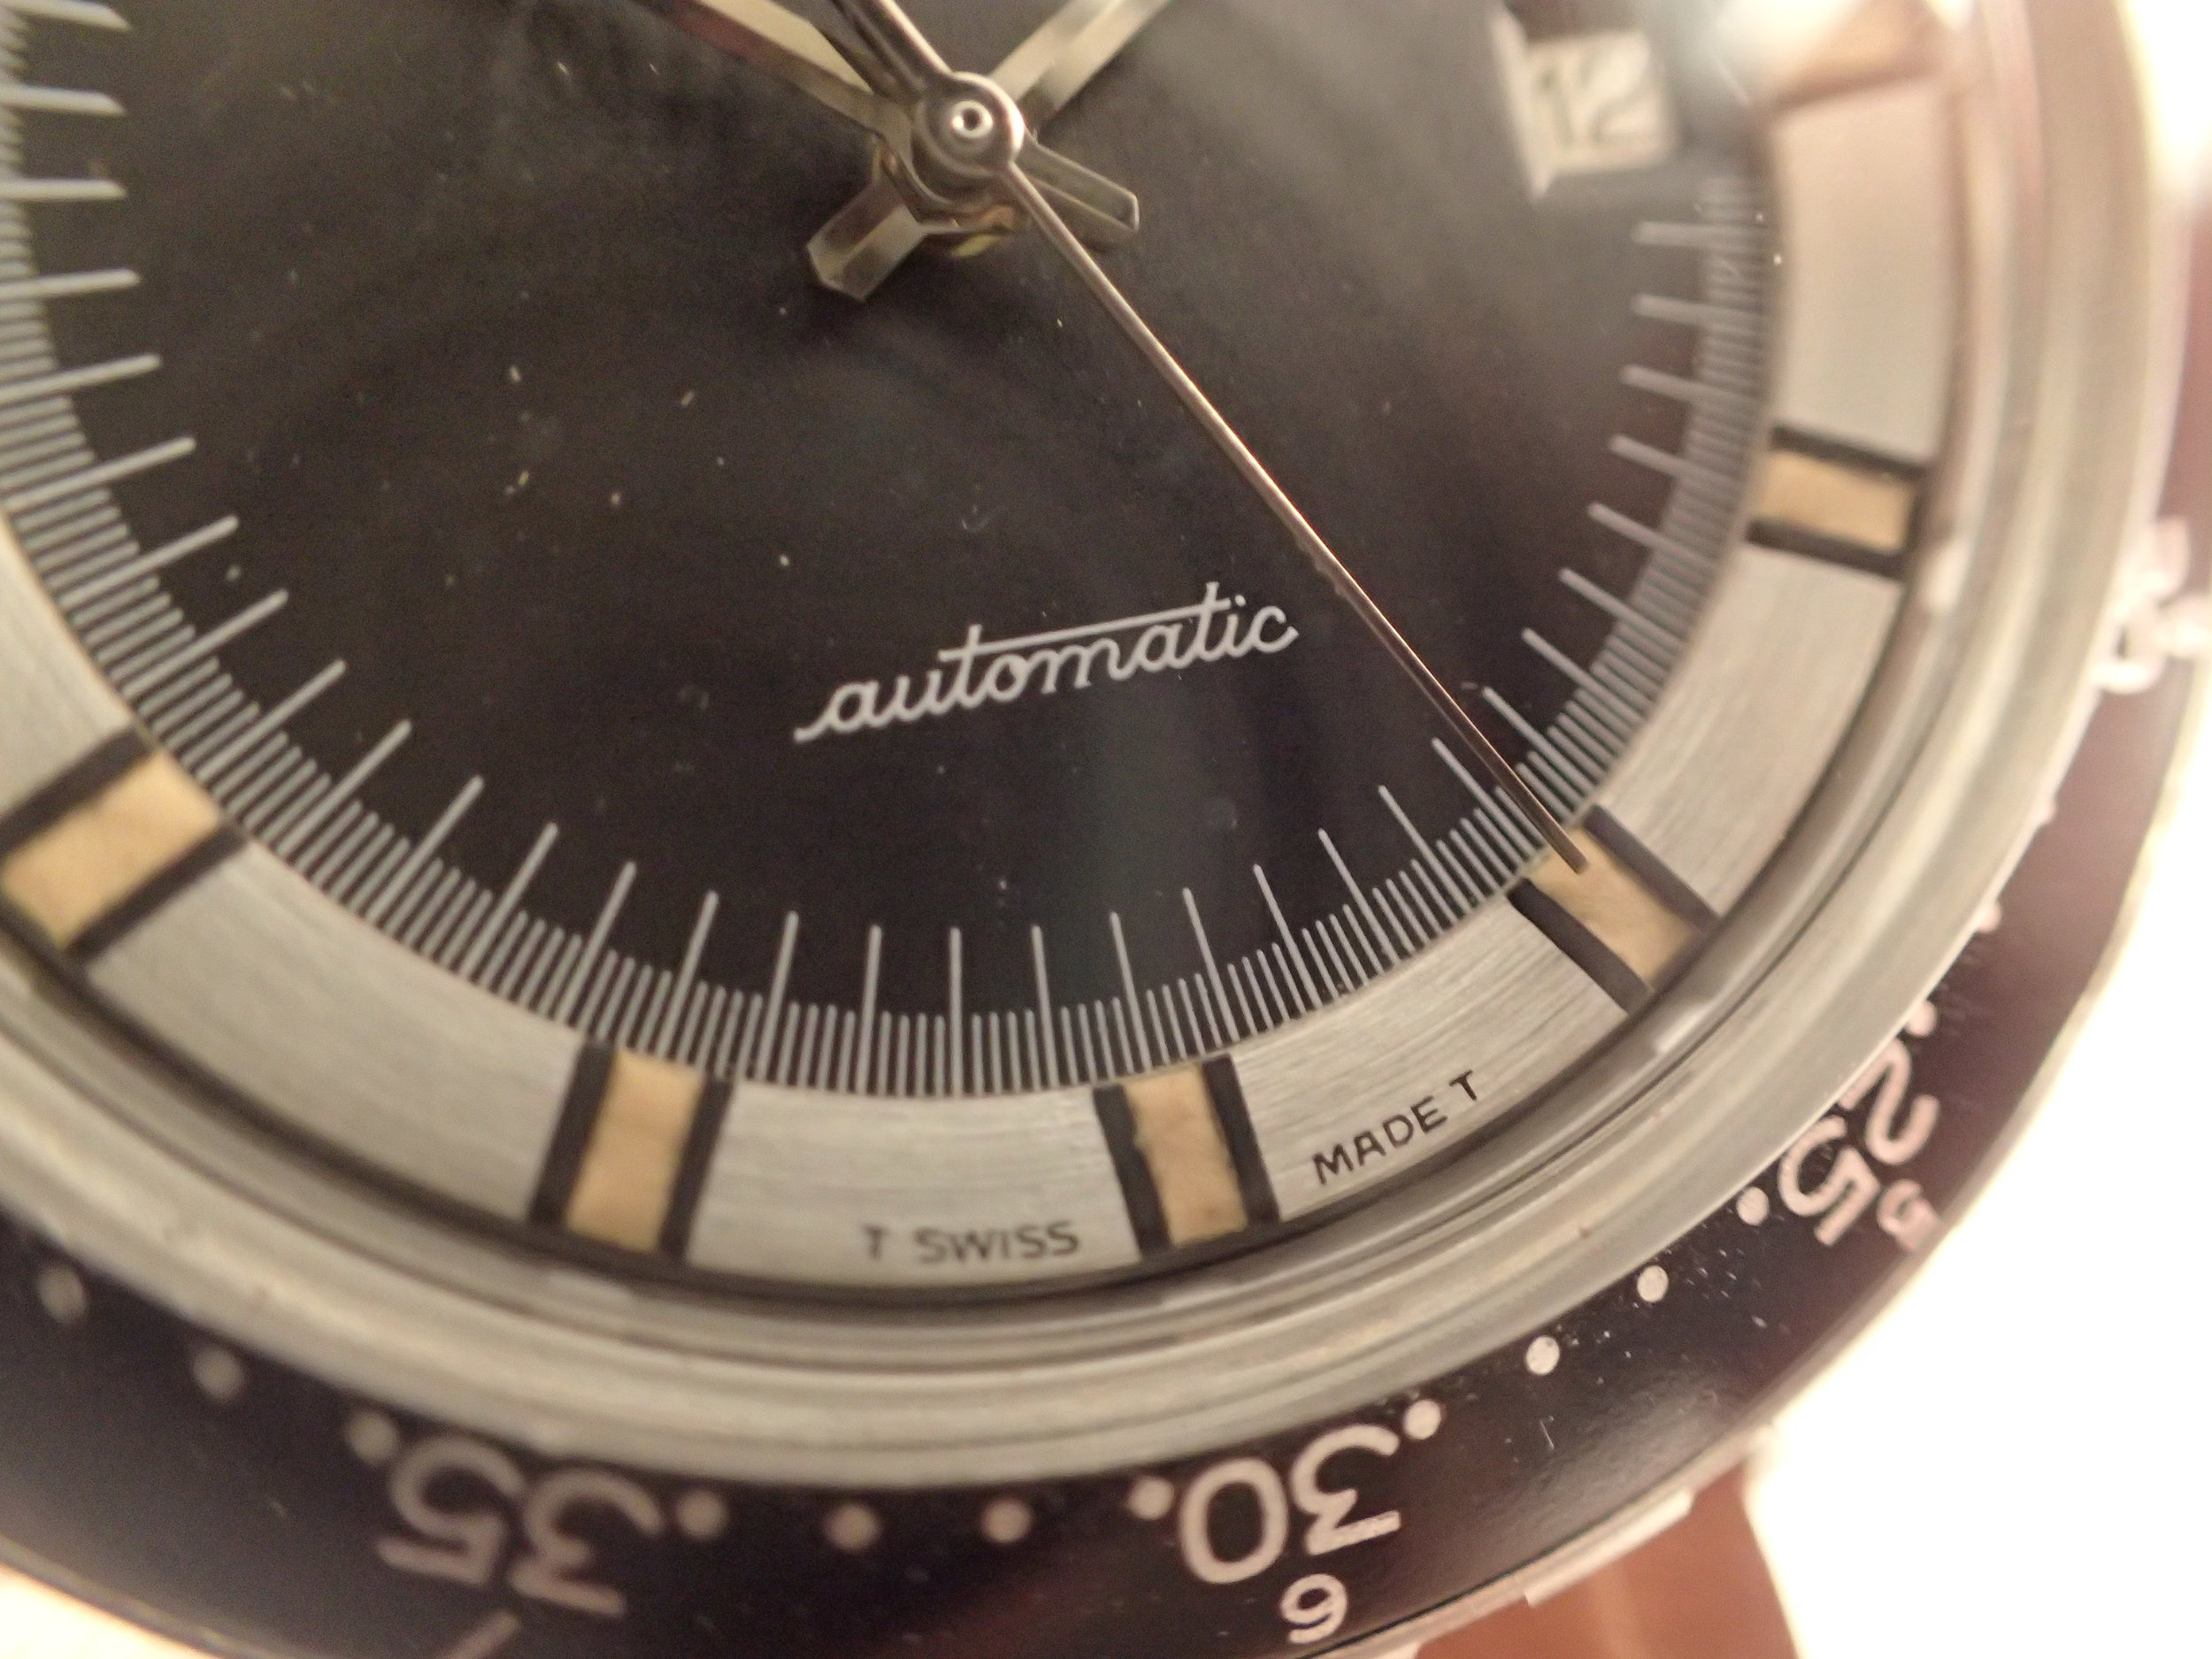 """The über-cool """"automatic"""" dial detail. I love this."""